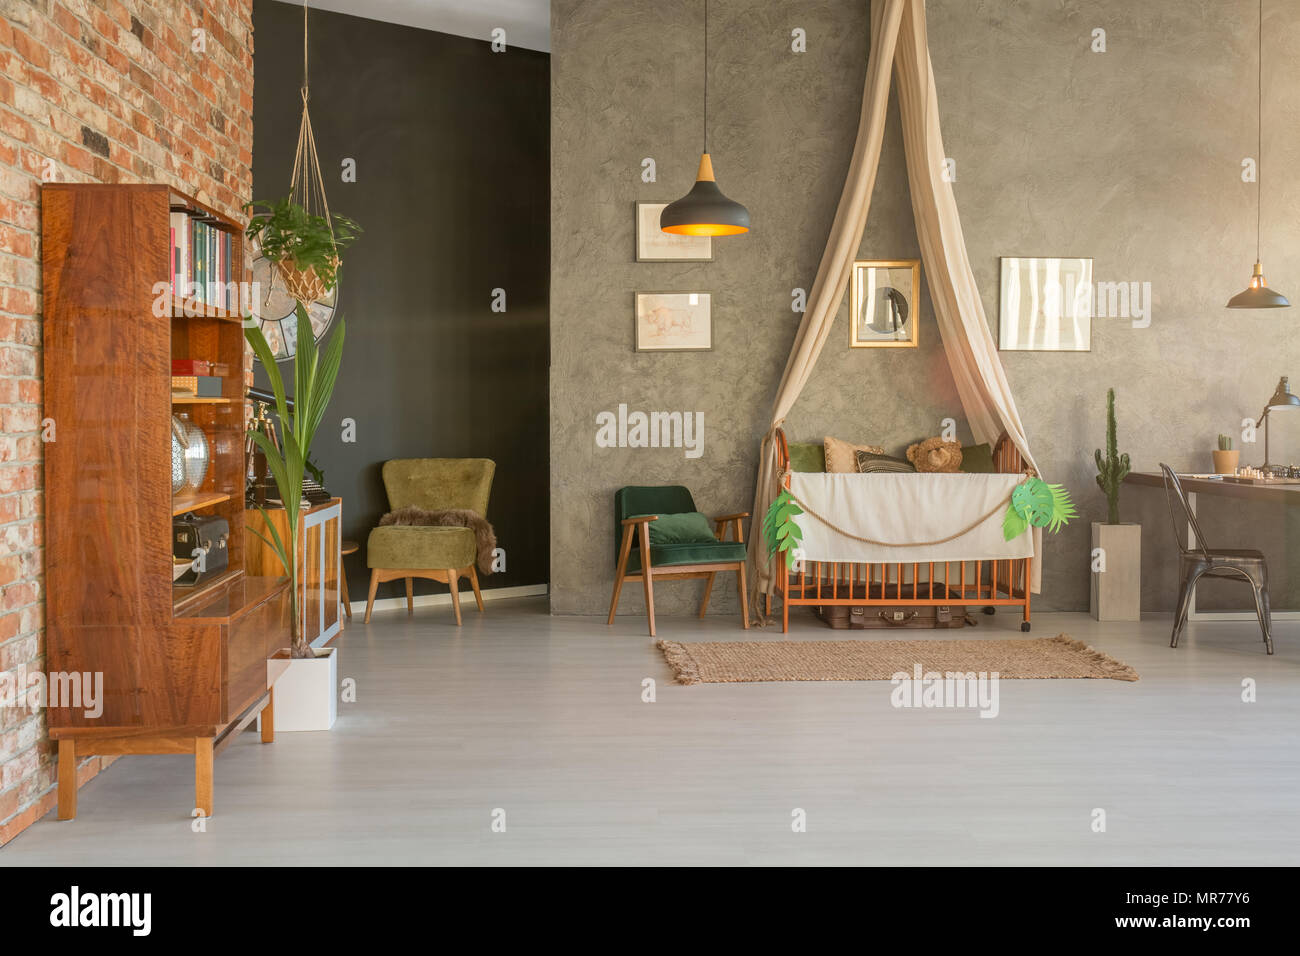 Spacious home interior with baby crib - Stock Image